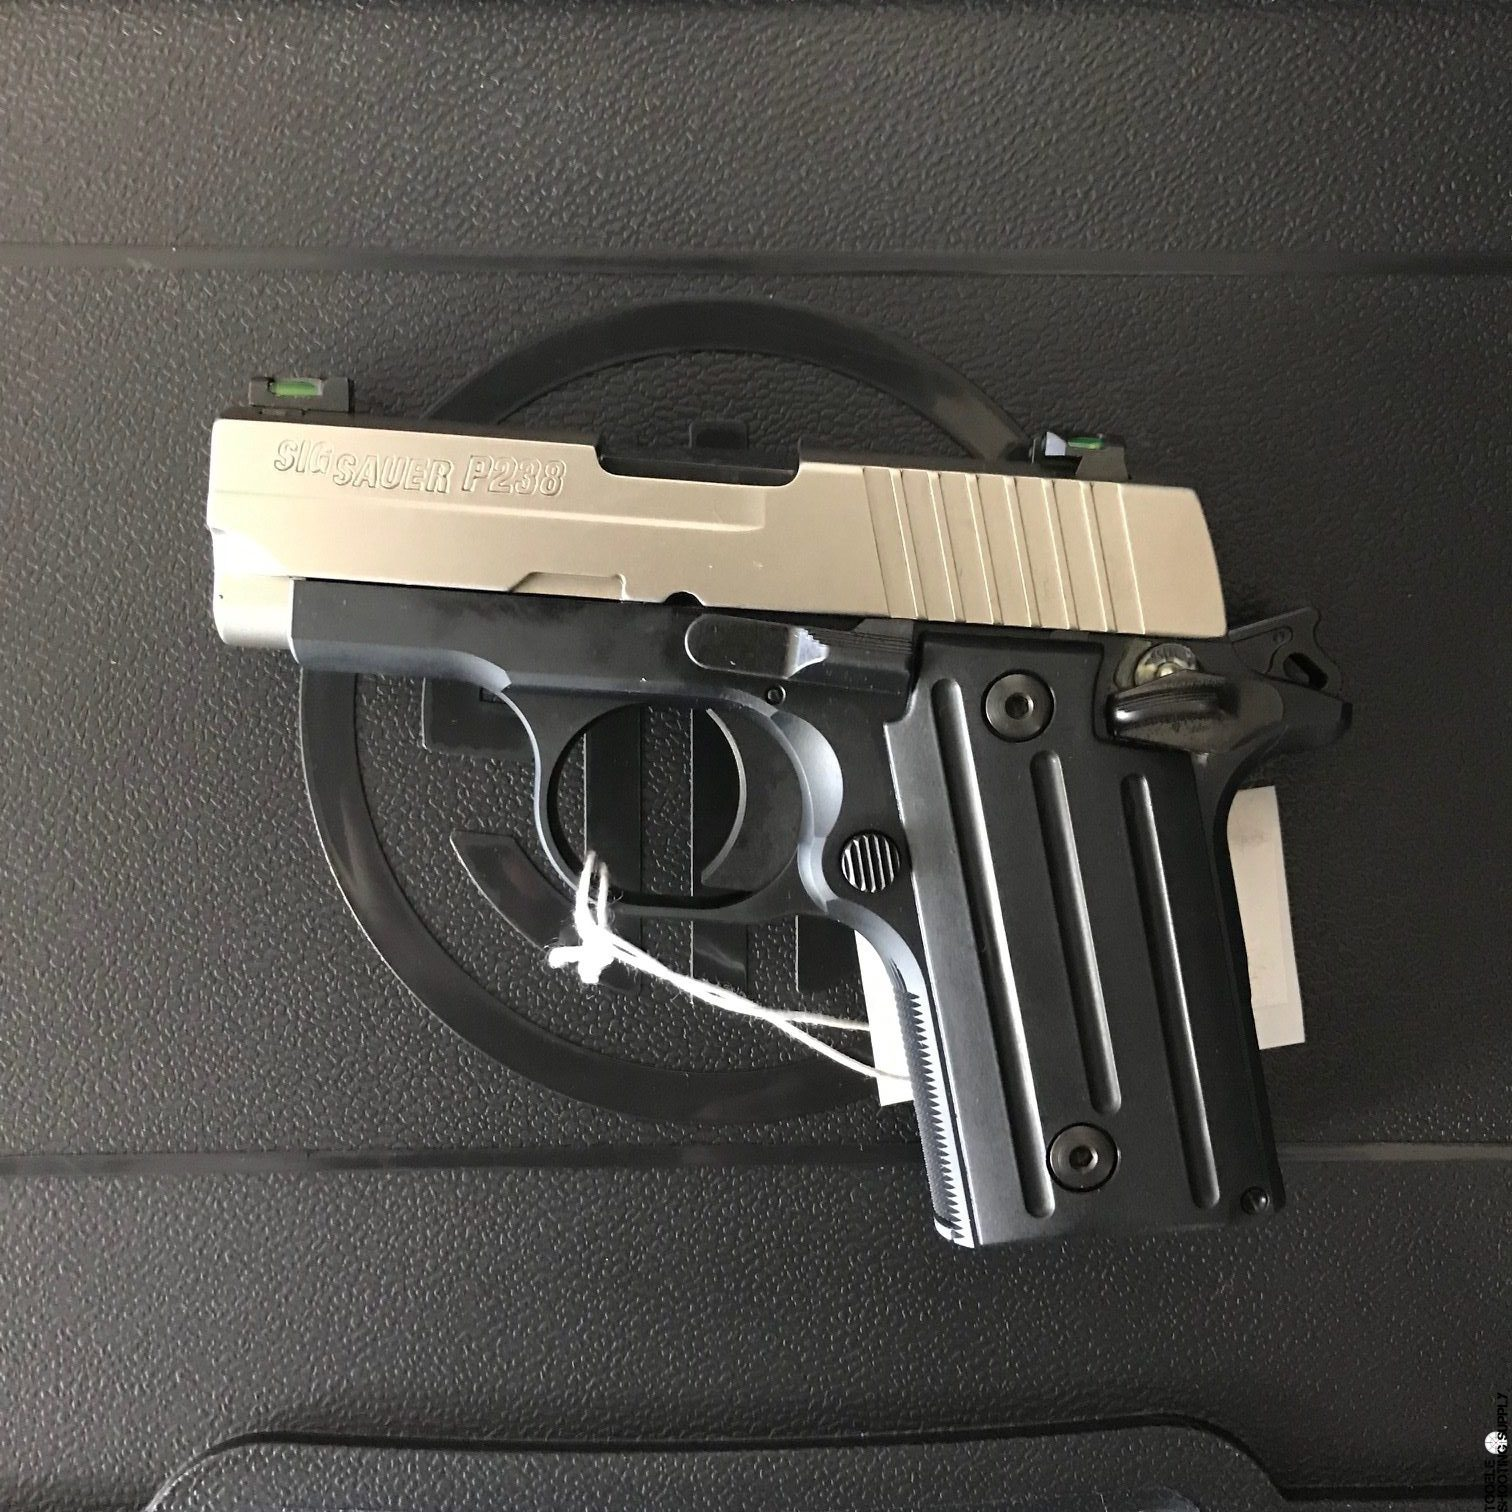 hight resolution of sig sauer p238 380 acp pistol with two tone finish x green sights stainless slide black alloy frame 6rd sig sauer 238 380 sp 1